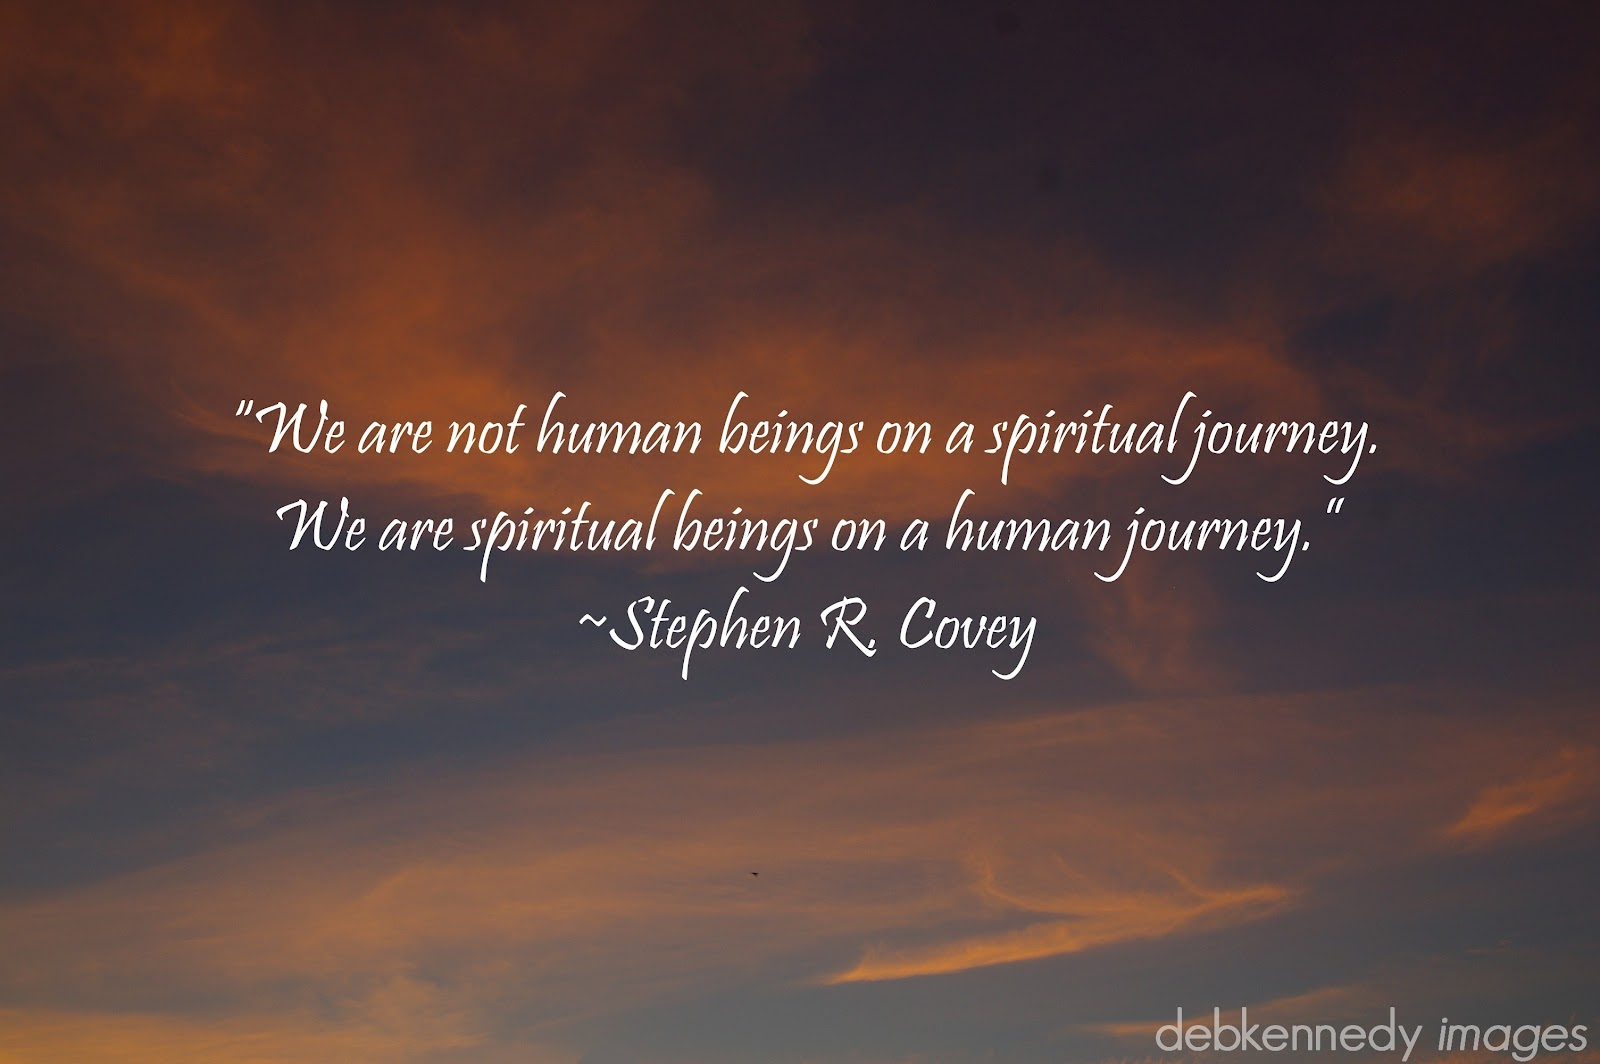 Stephen Covey Quotes About Goals